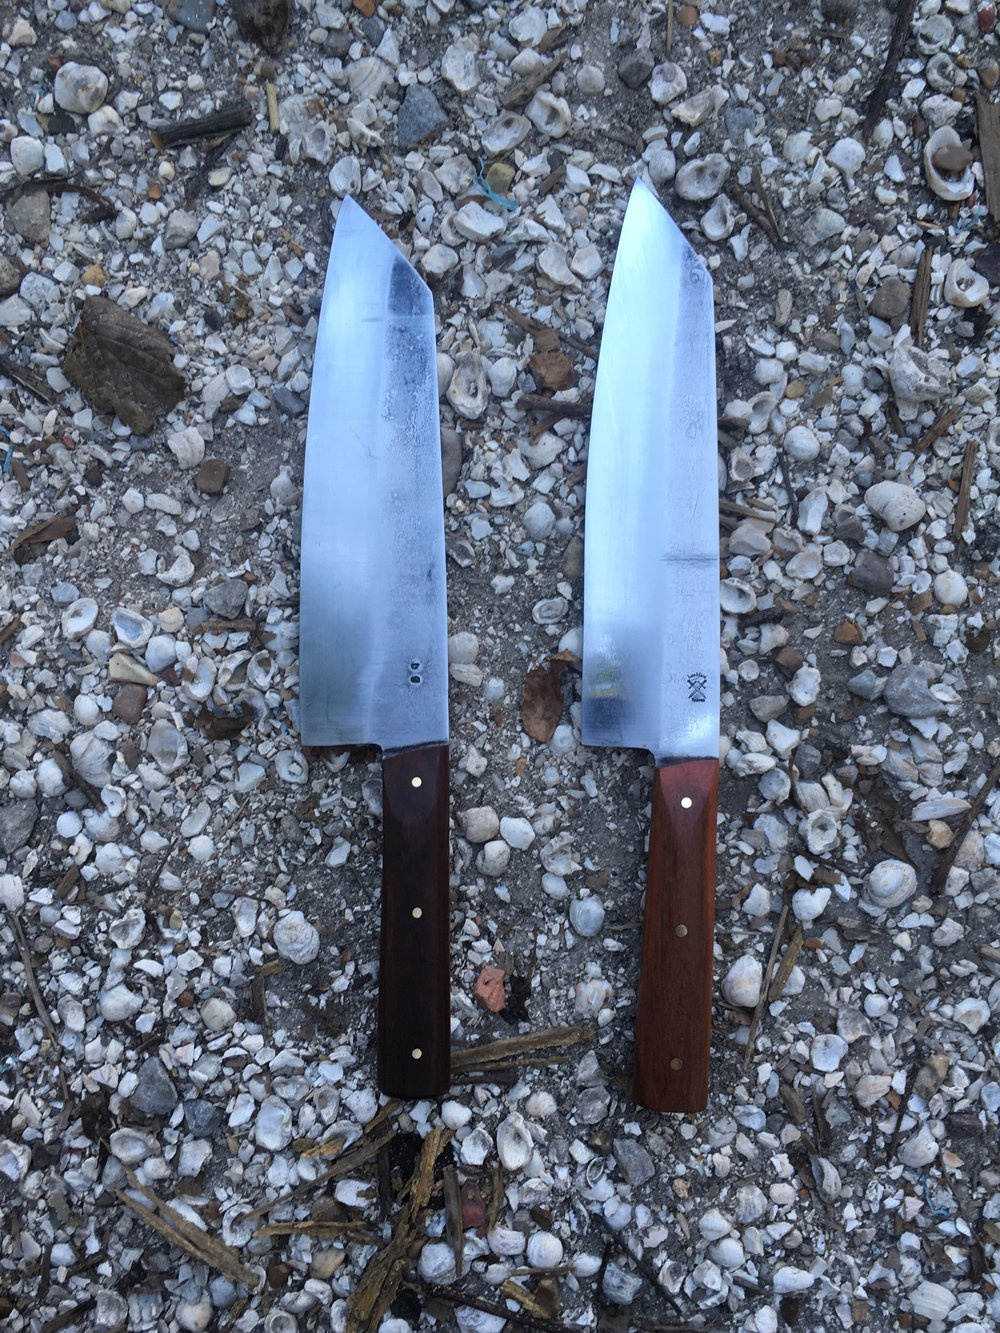 Student's knife (on left) and the knife i made for the class.